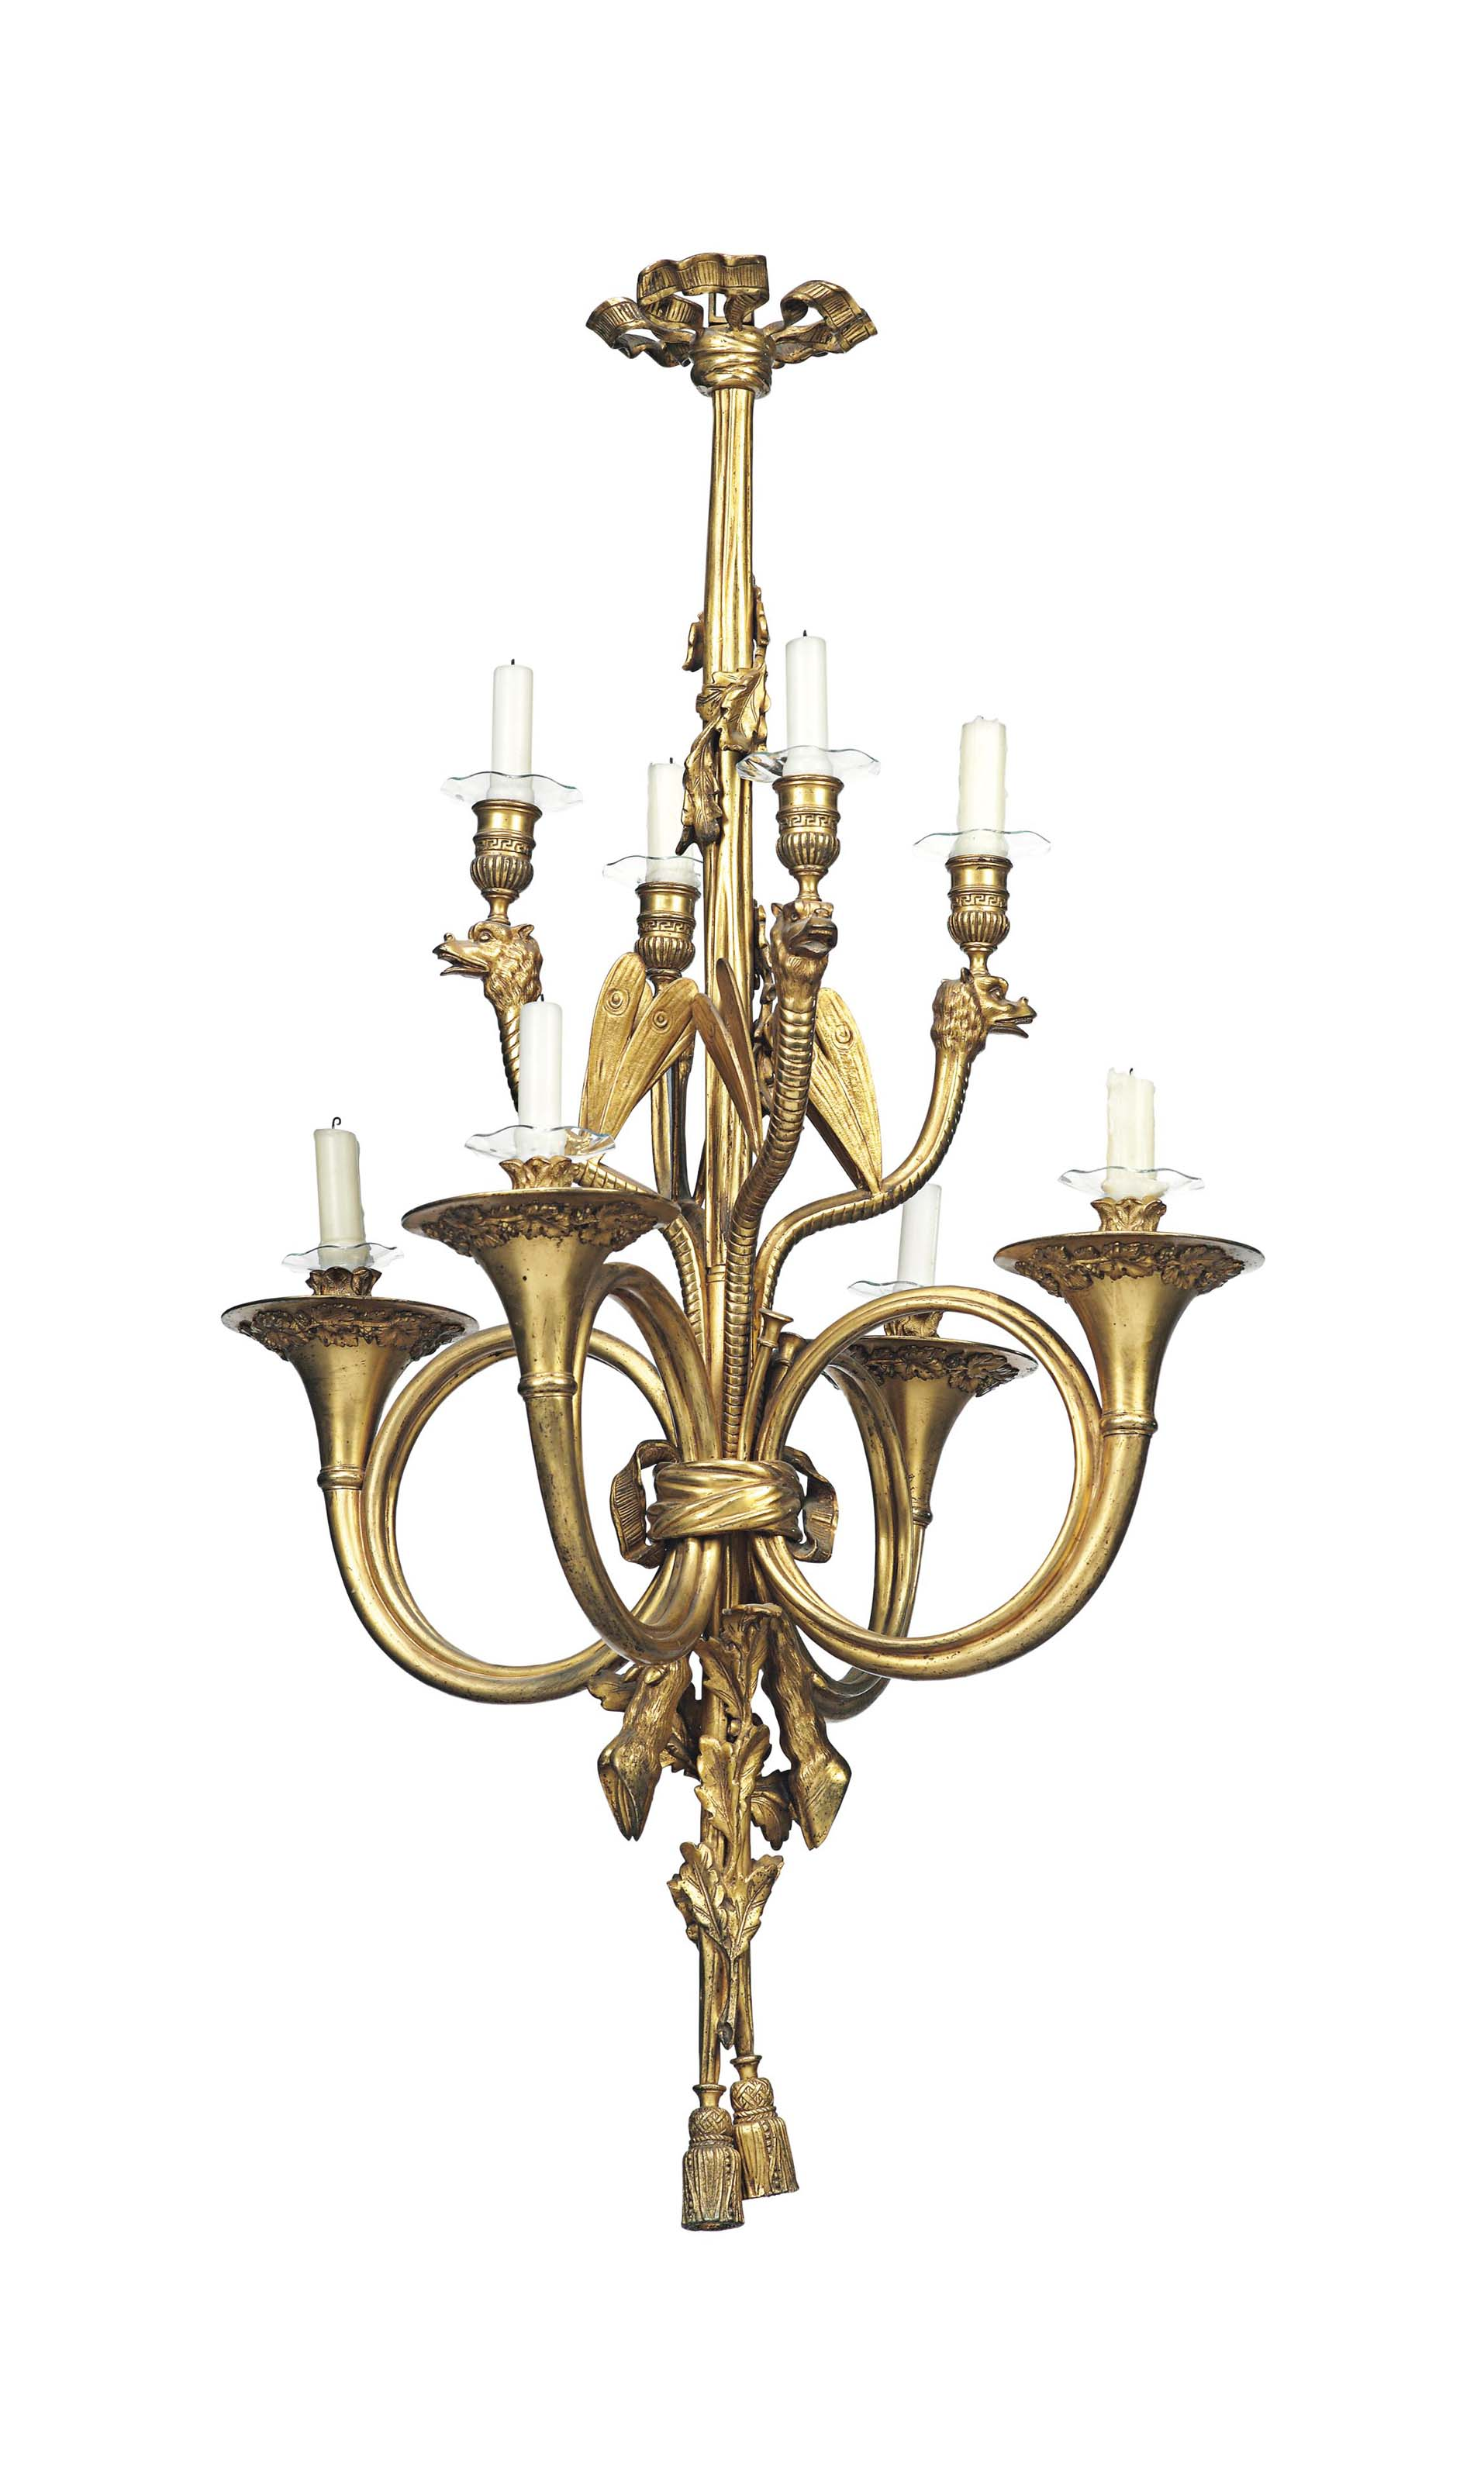 A FRENCH LACQUERED-BRONZE EIGH